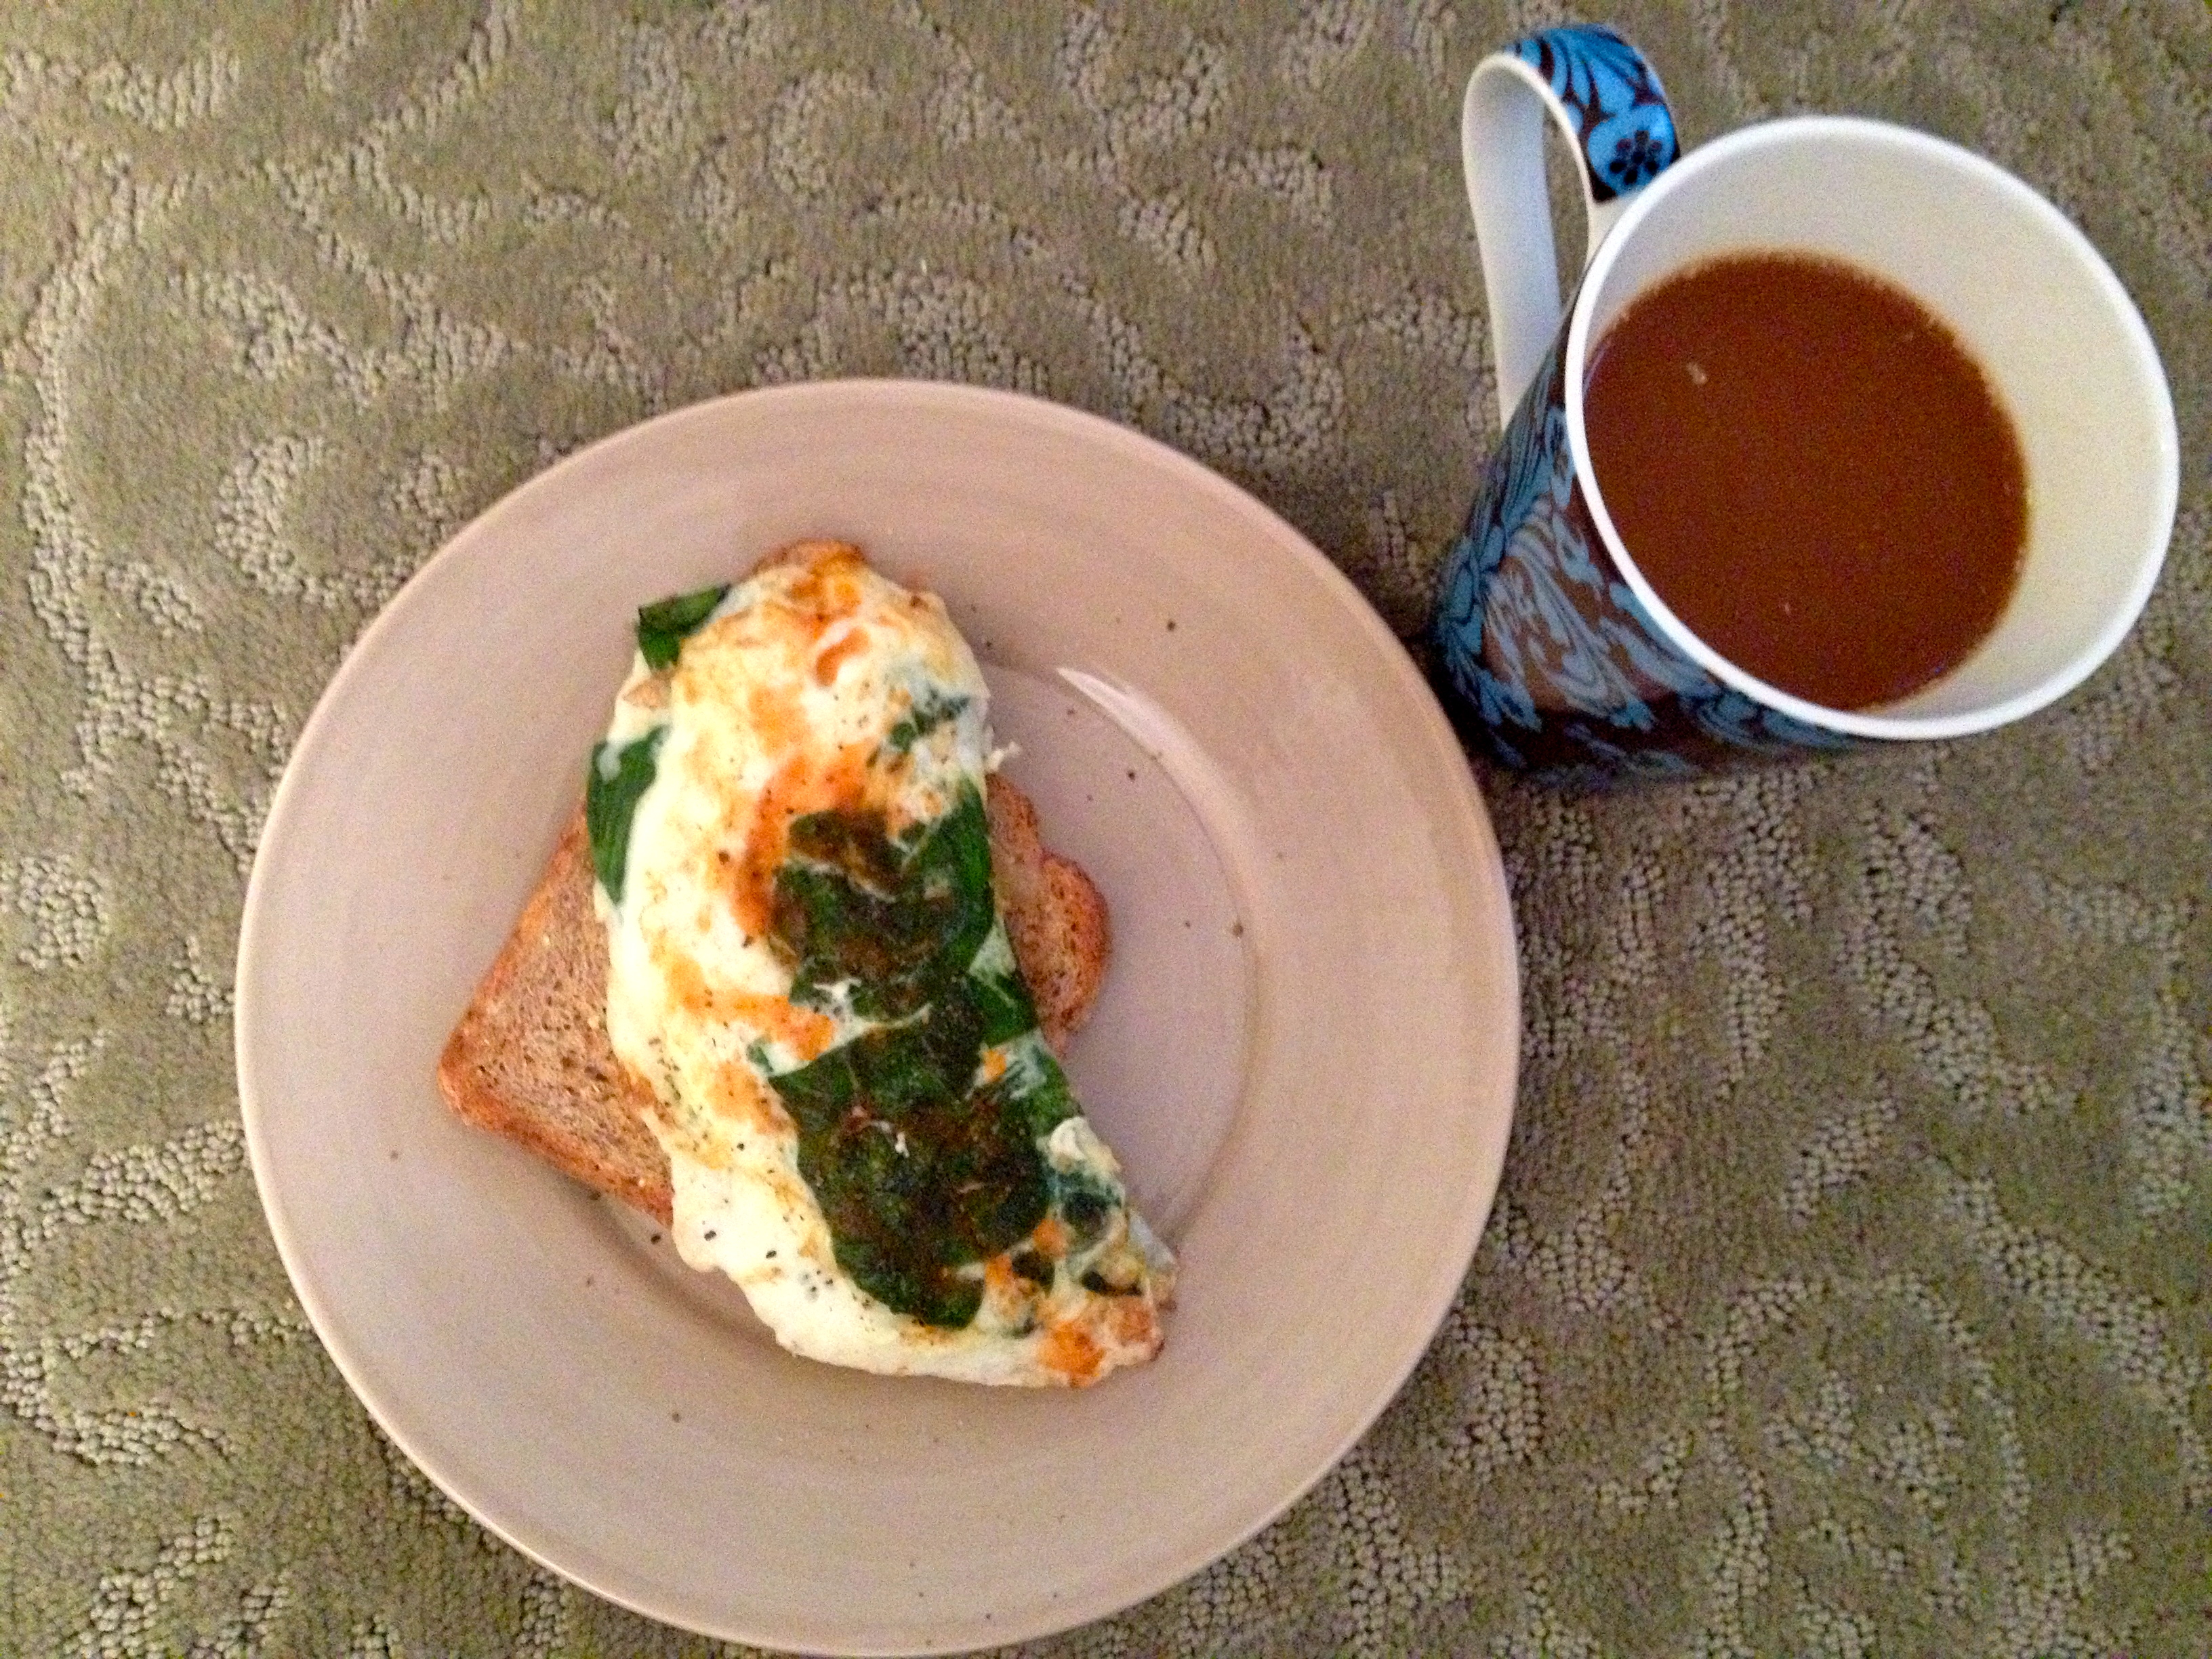 1:4-breakfast-spinach-egg-whites